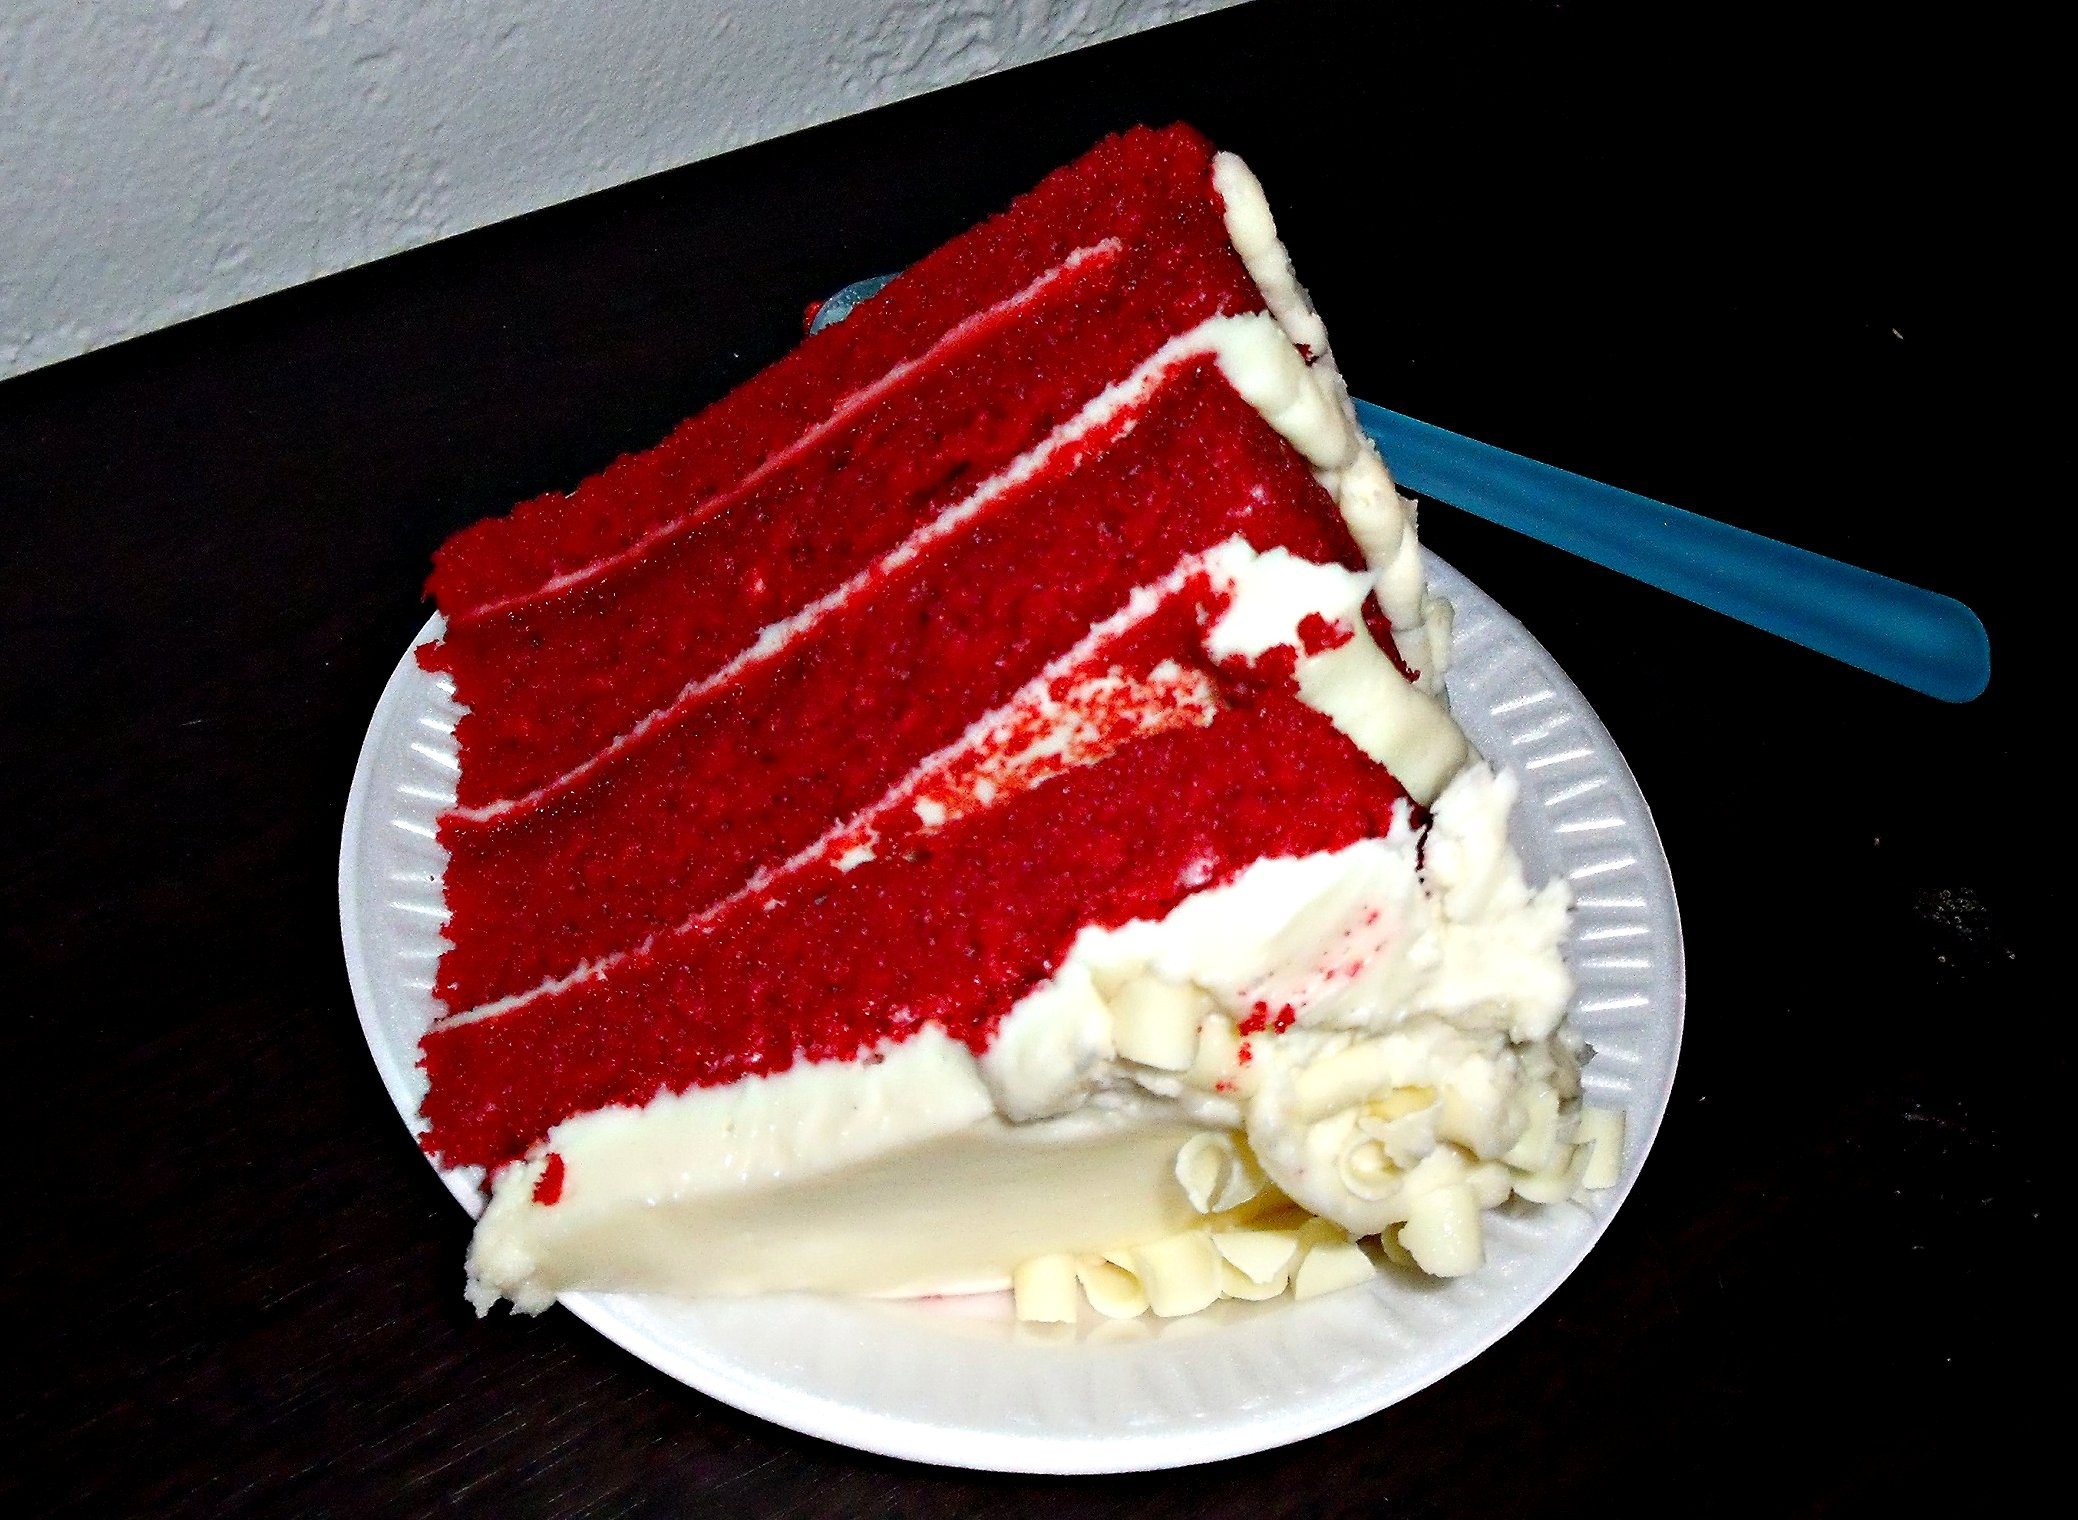 Red Velvet Cake Slice File:red velvet cake slice.jpg